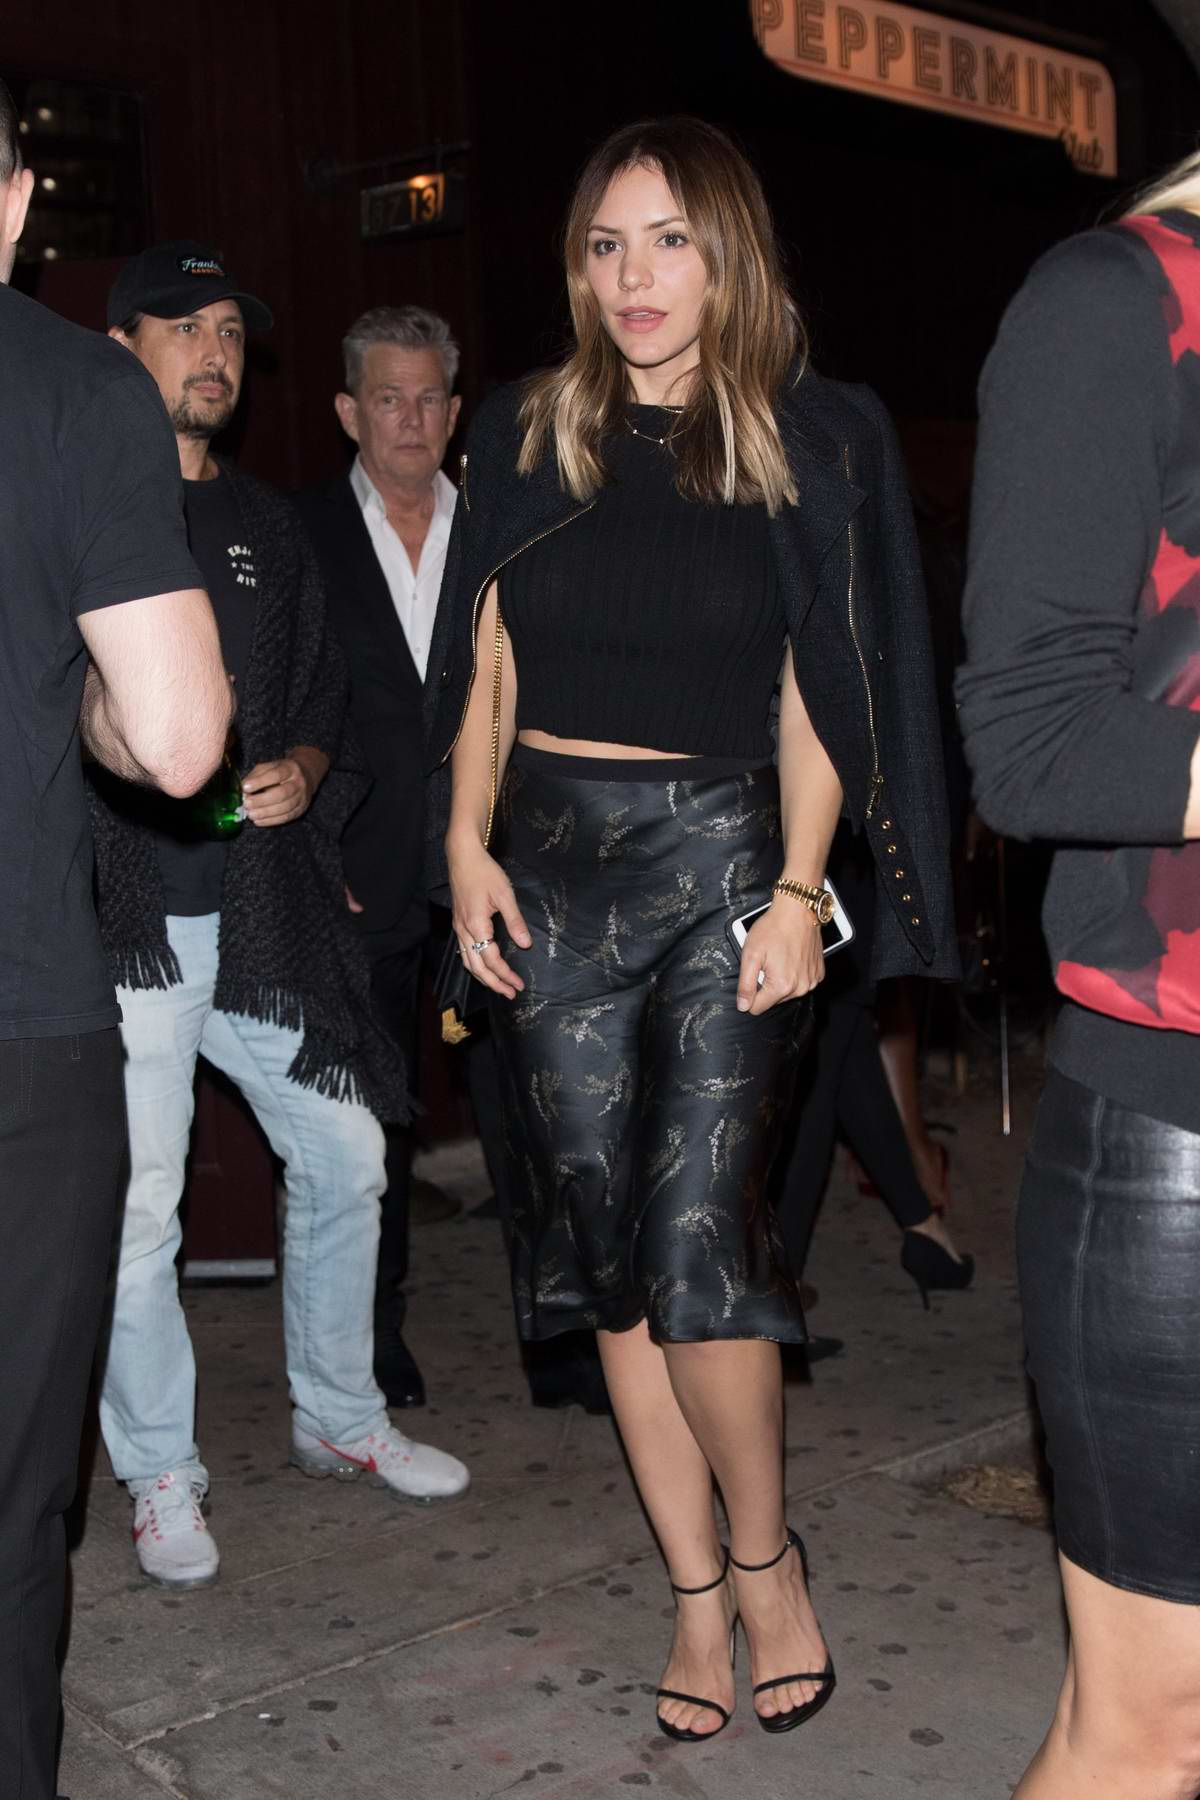 Katharine McPhee and David Foster leaves The Peppermint Club together after attending a fundraiser in West Hollywood, Los Angeles